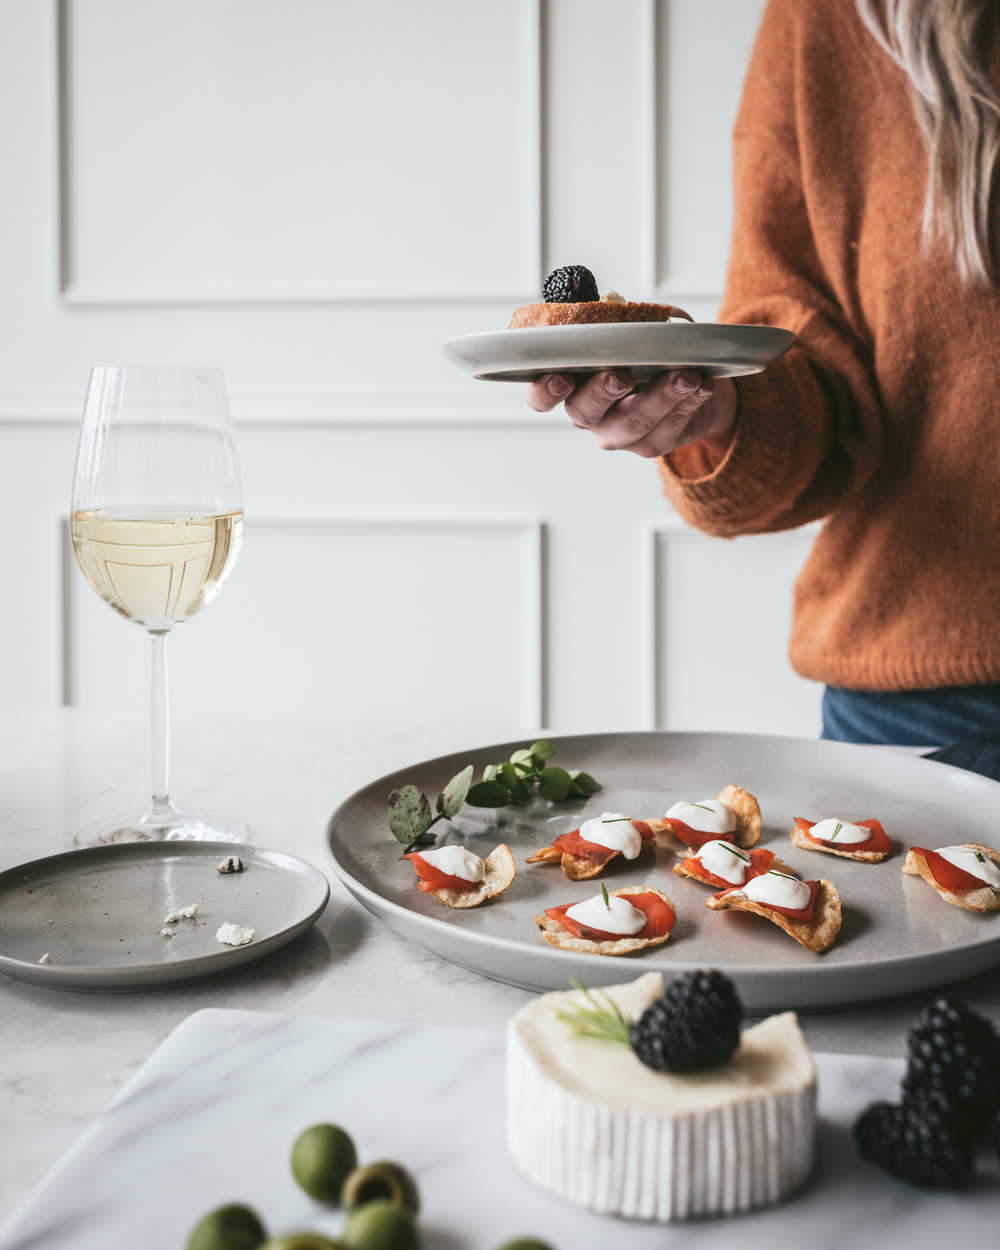 Salmon Crisps - 1 Package thick cut kettle style salted potato chips8 oz thinly sliced salmon lox4 oz creme fraicheFresh dill for garnishDirections: For each bite, layer potato chip, then salmon, then dollop of creme fraiche, then top with small sprig of fresh dill.Serve With: A Pinot Noir, we love a Pinot from the Willamette Valley, OR or a French Burgundy